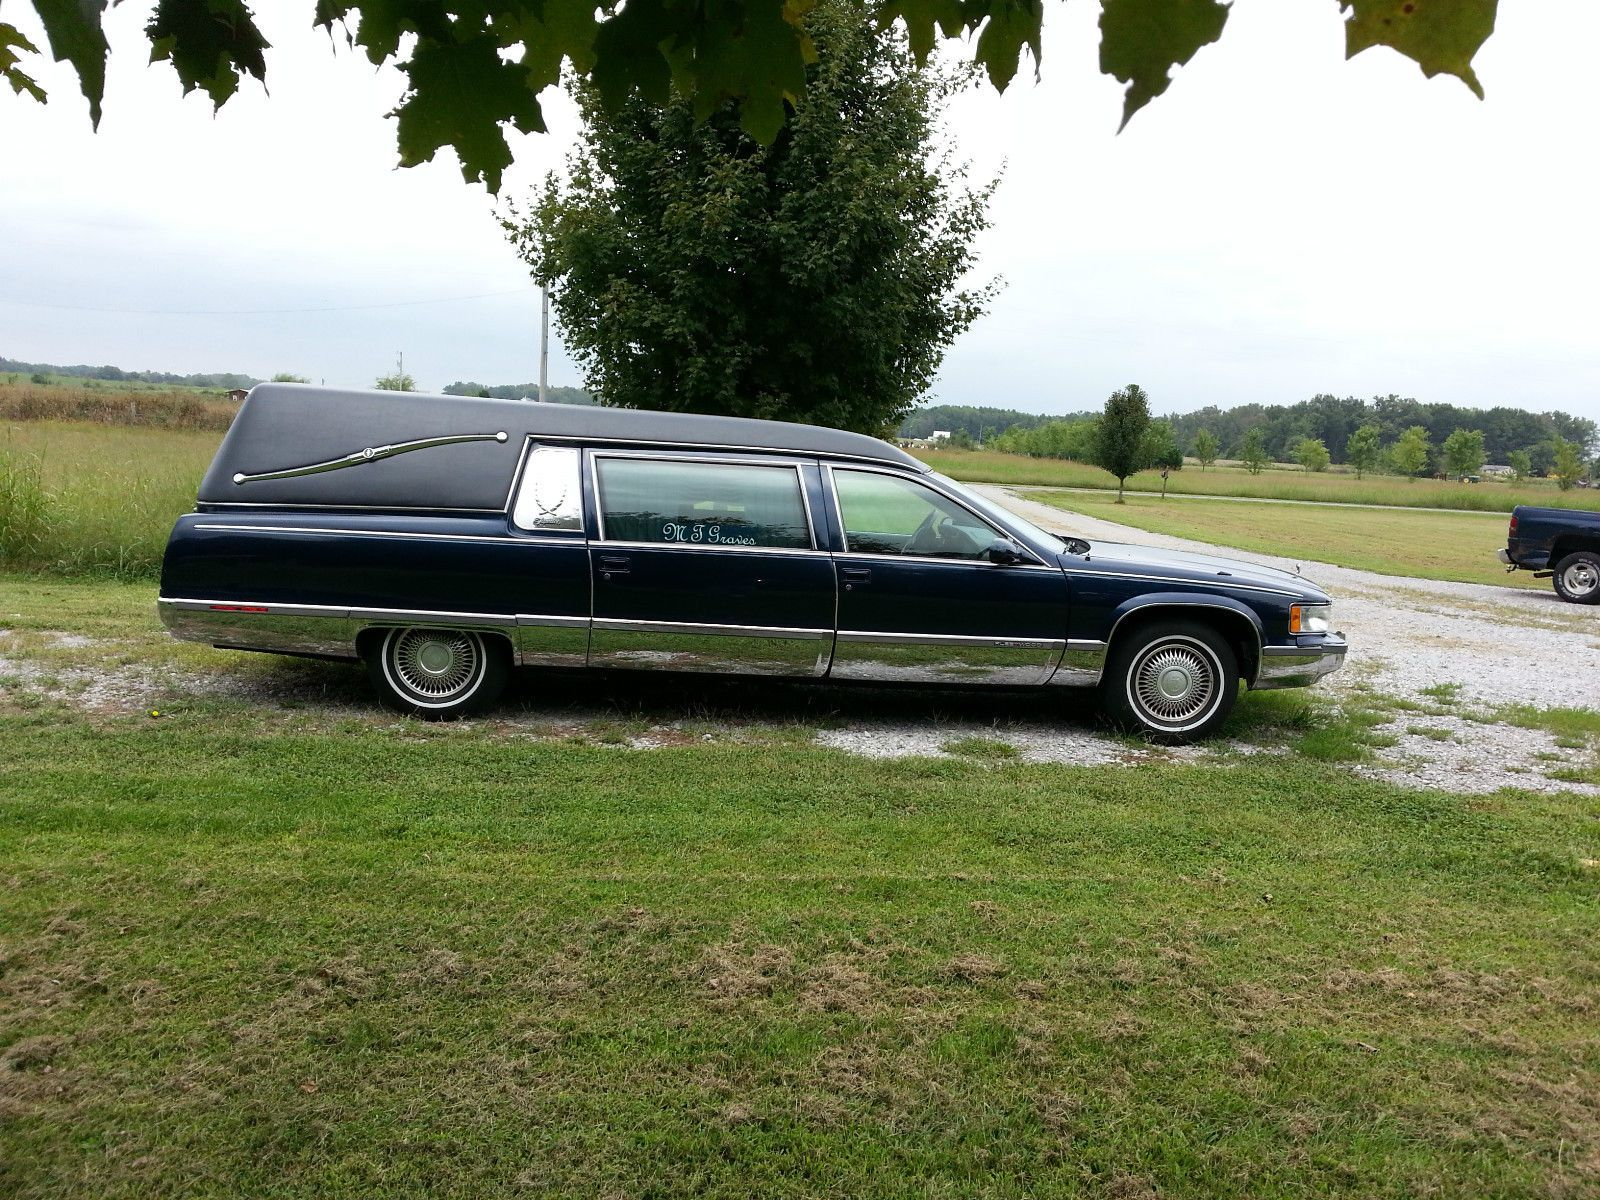 1959 cadillac miller meteor hearses for sale pinterest cadillac 1959 cadillac and movie cars